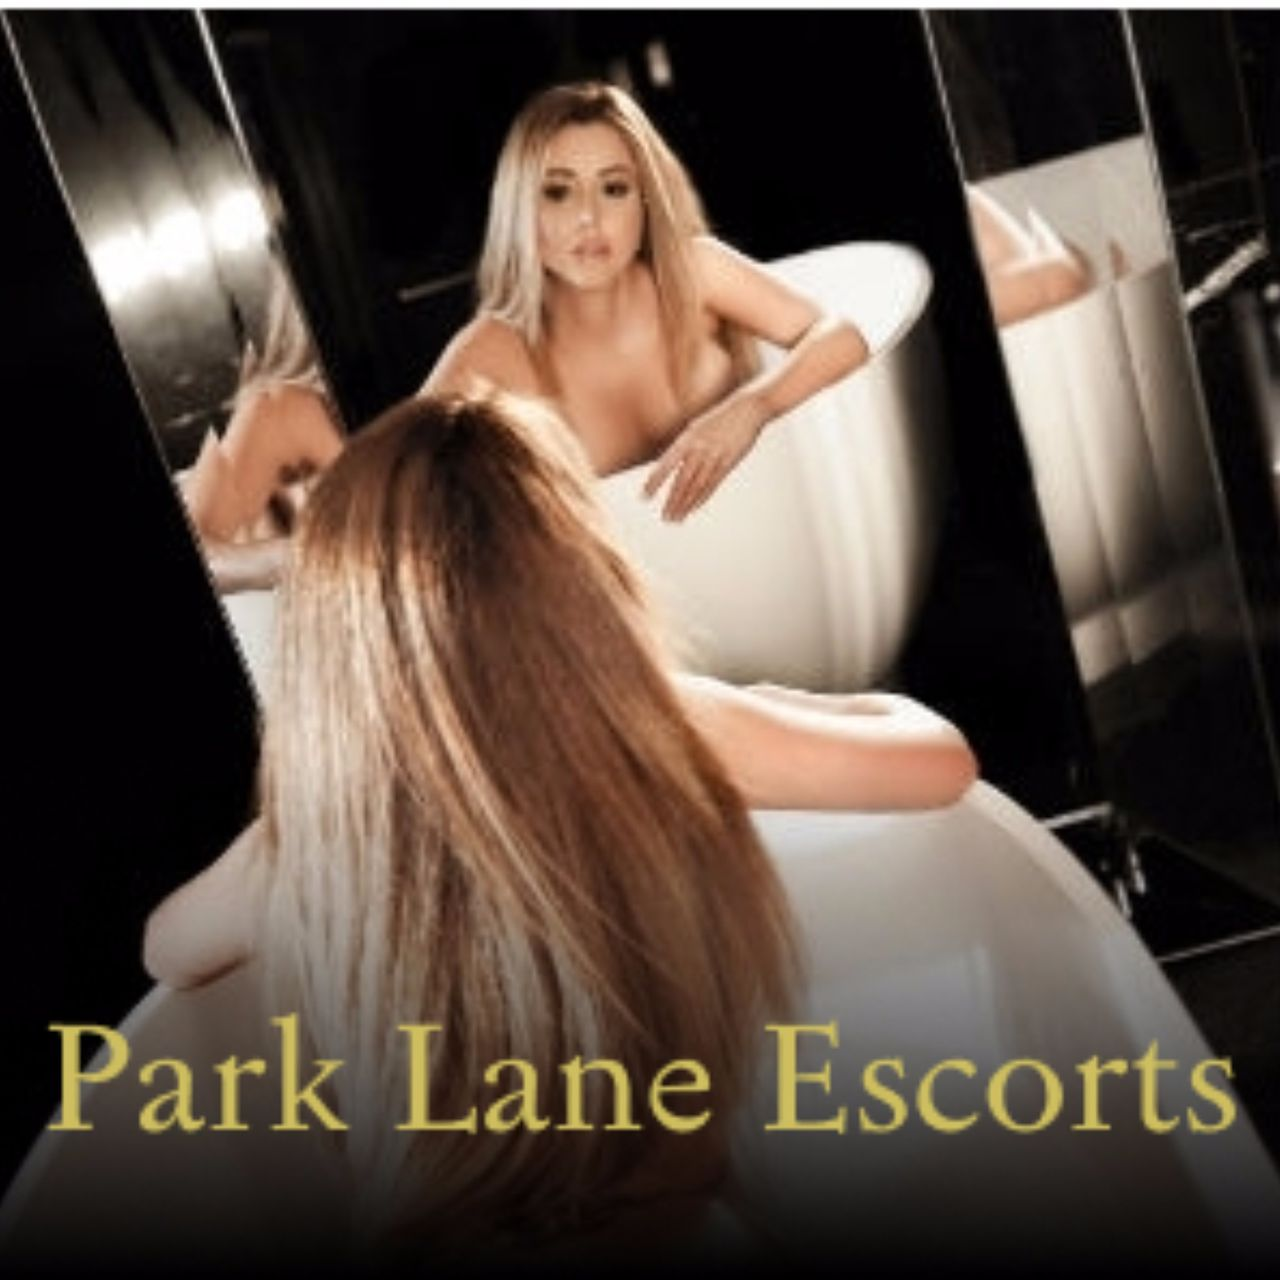 Park Lane Escorts